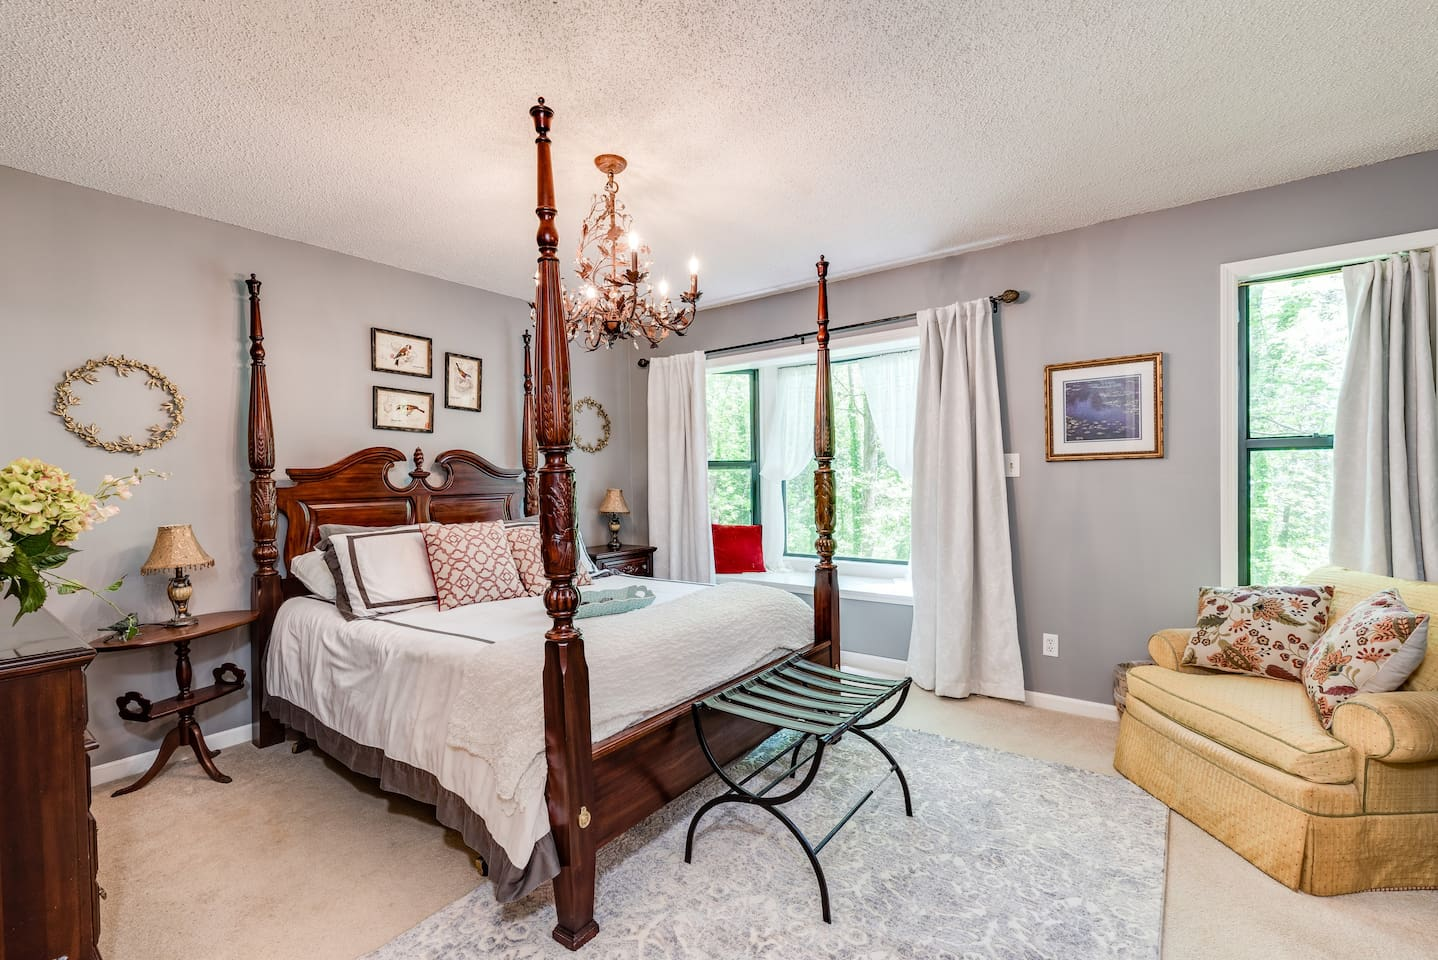 Our exquisite master suite with window seat which overlooks the woods. When it rains, a small brook and waterfall appears.